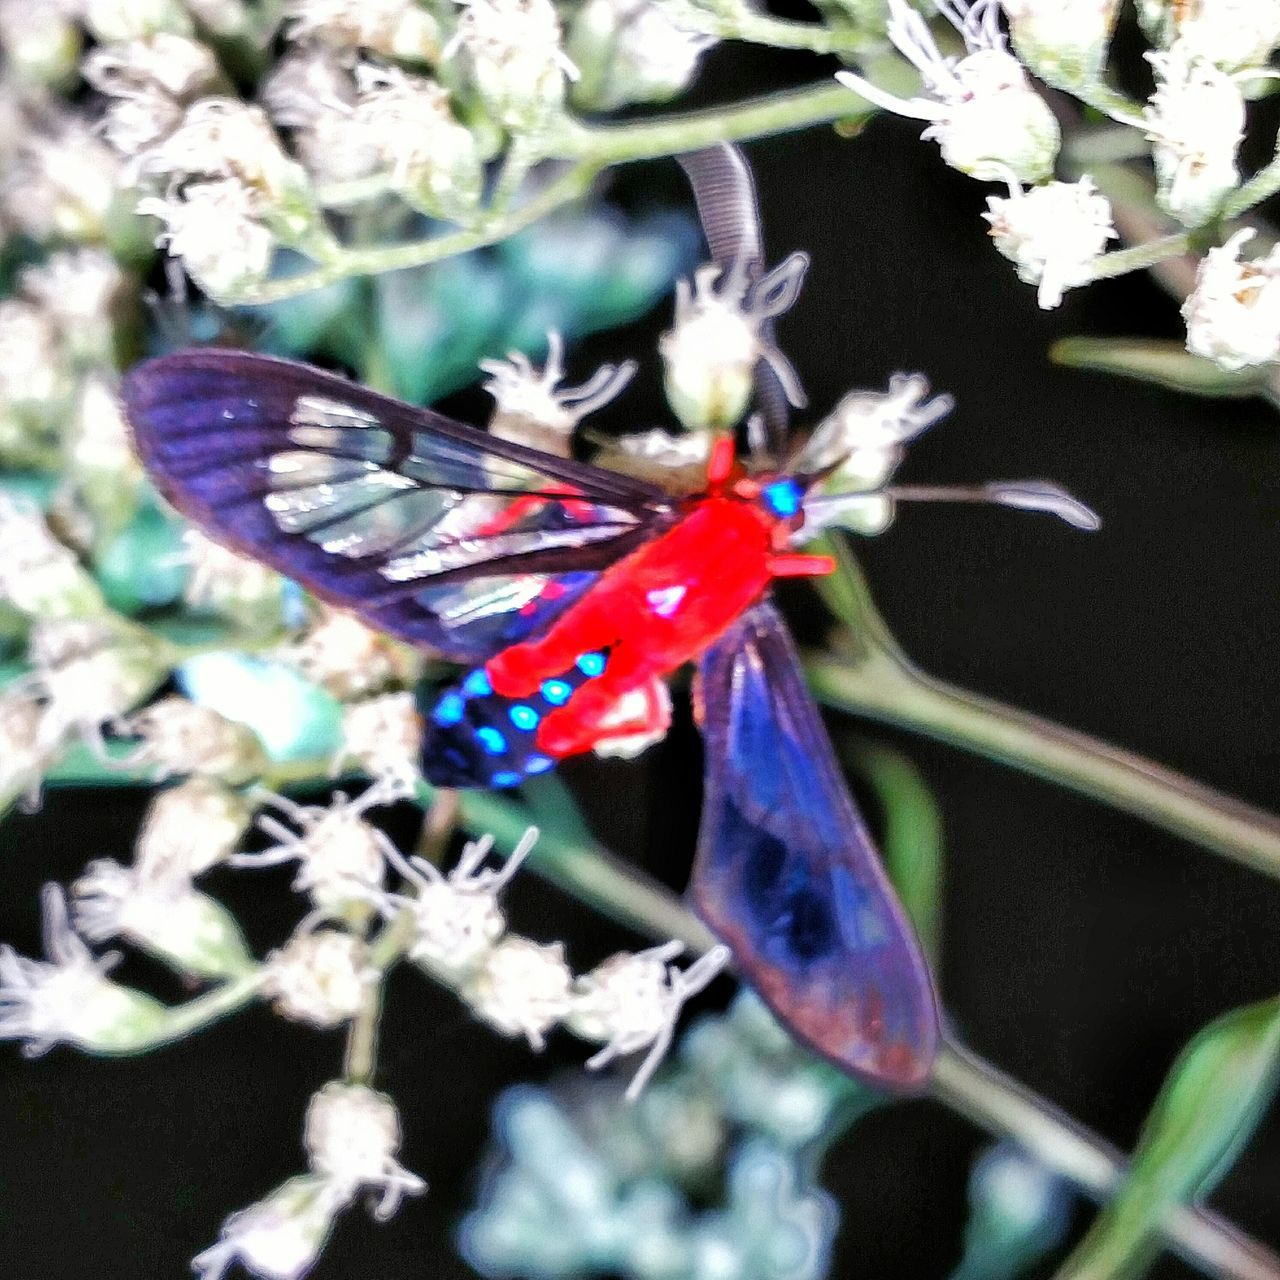 insect, animals in the wild, animal themes, butterfly - insect, no people, butterfly, one animal, close-up, fragility, flower, outdoors, plant, day, nature, animal wildlife, beauty in nature, spread wings, flower head, freshness